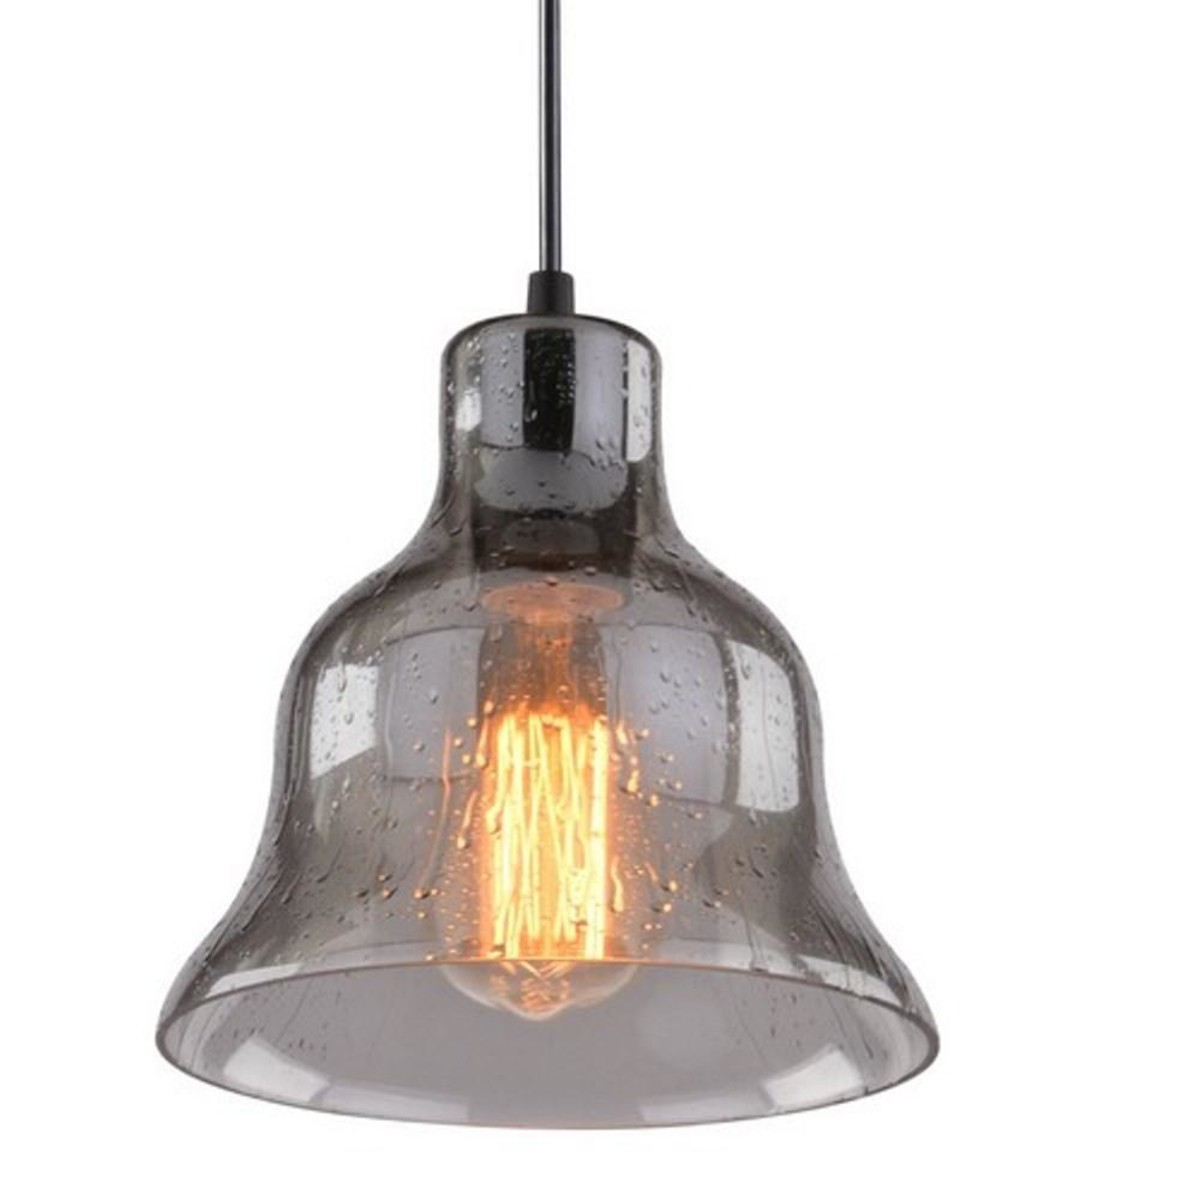 Люстра Arte Lamp Amiata A4255SP-1SM E27 1 лампа